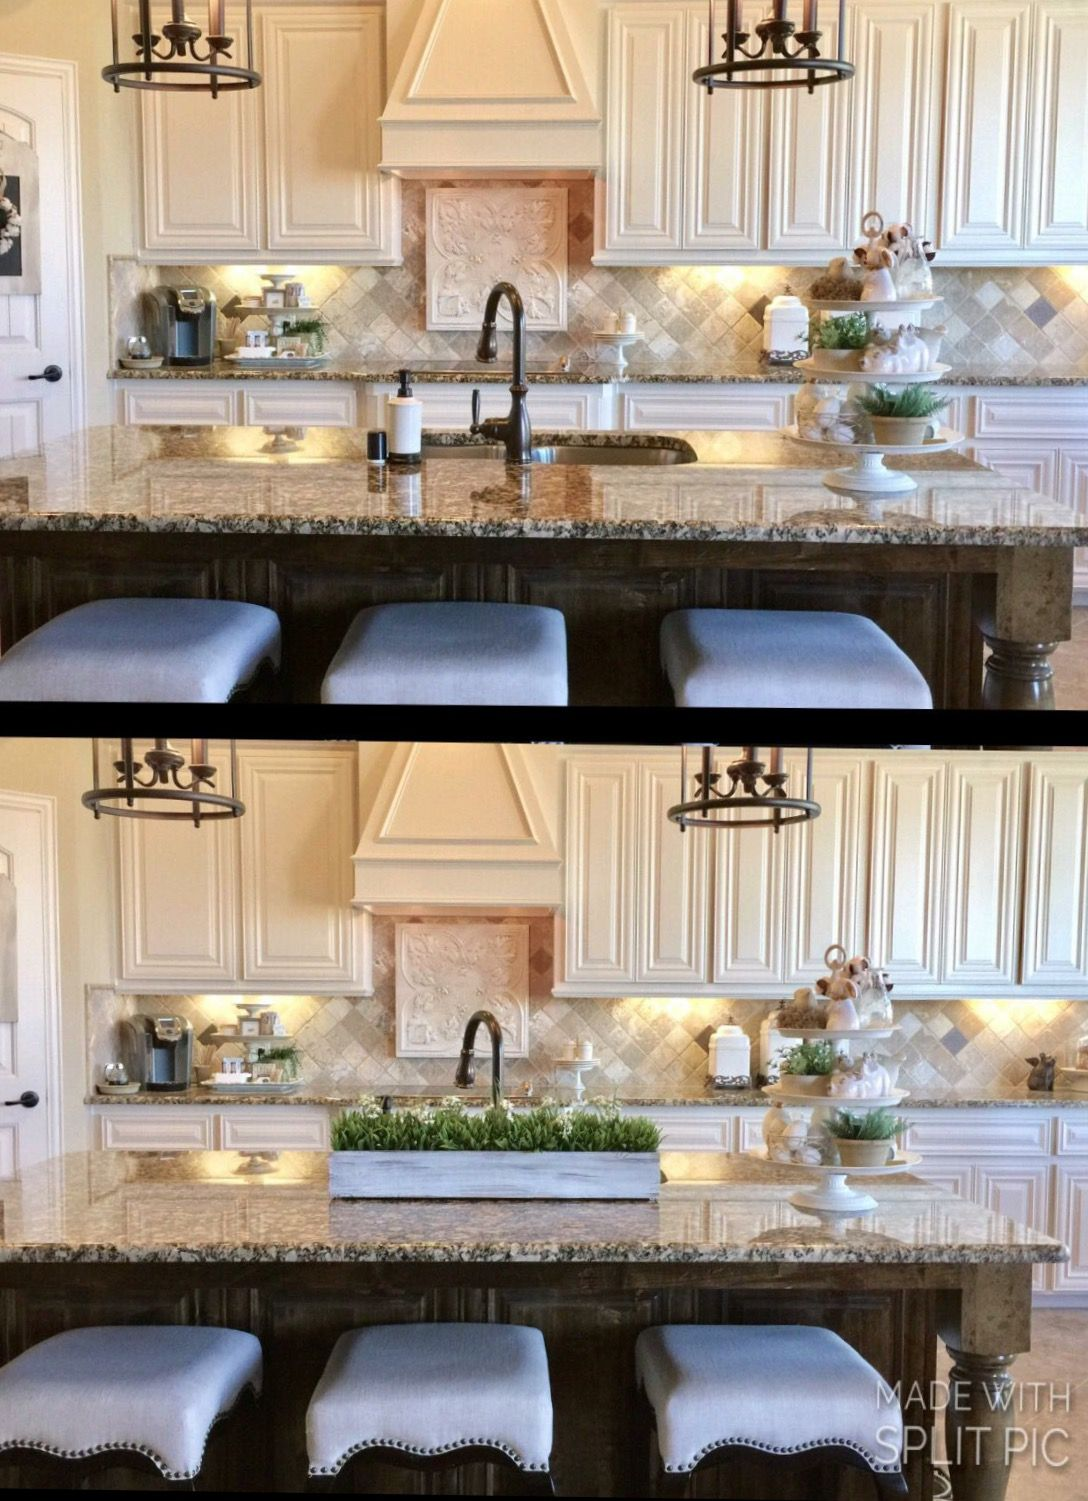 hide your island sink kitchen styling on kitchen island ideas with sink id=36108